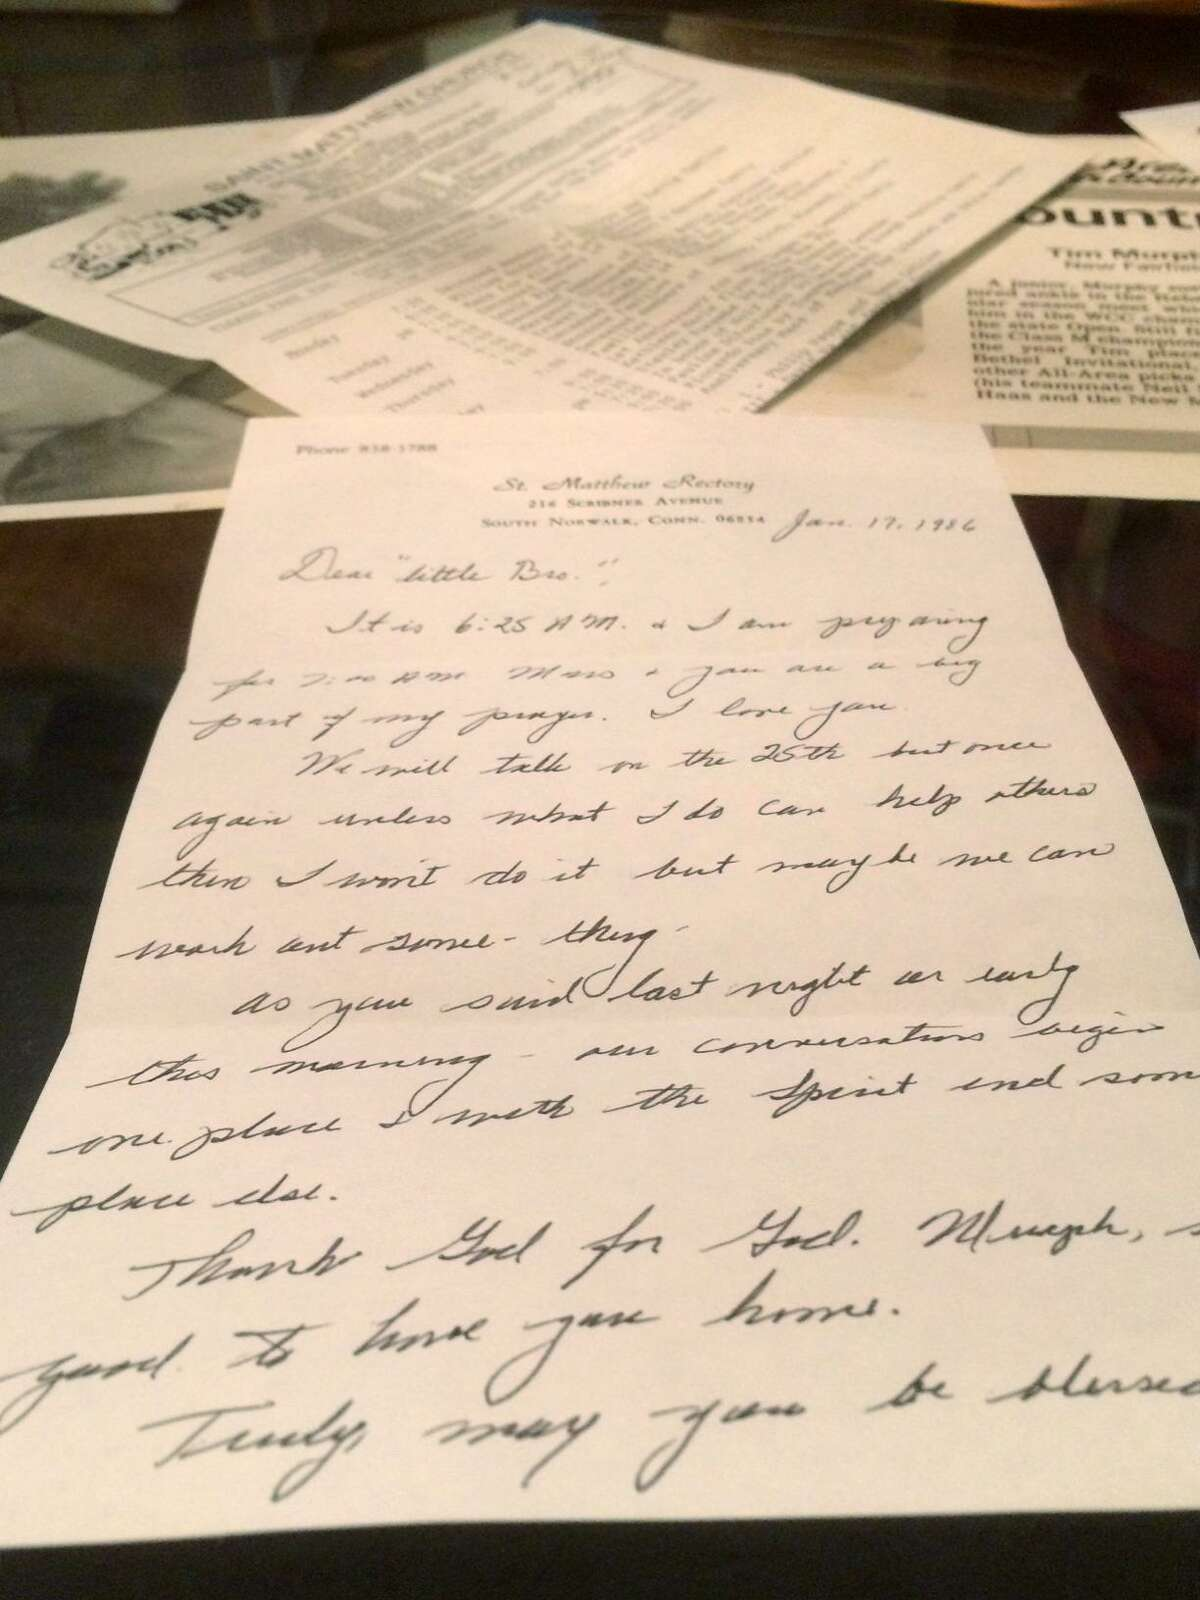 The Rev. Martin Federici sent dozens of letters, some shown here, expressing his love for the young man he was allegedly abusing in the 1980s.